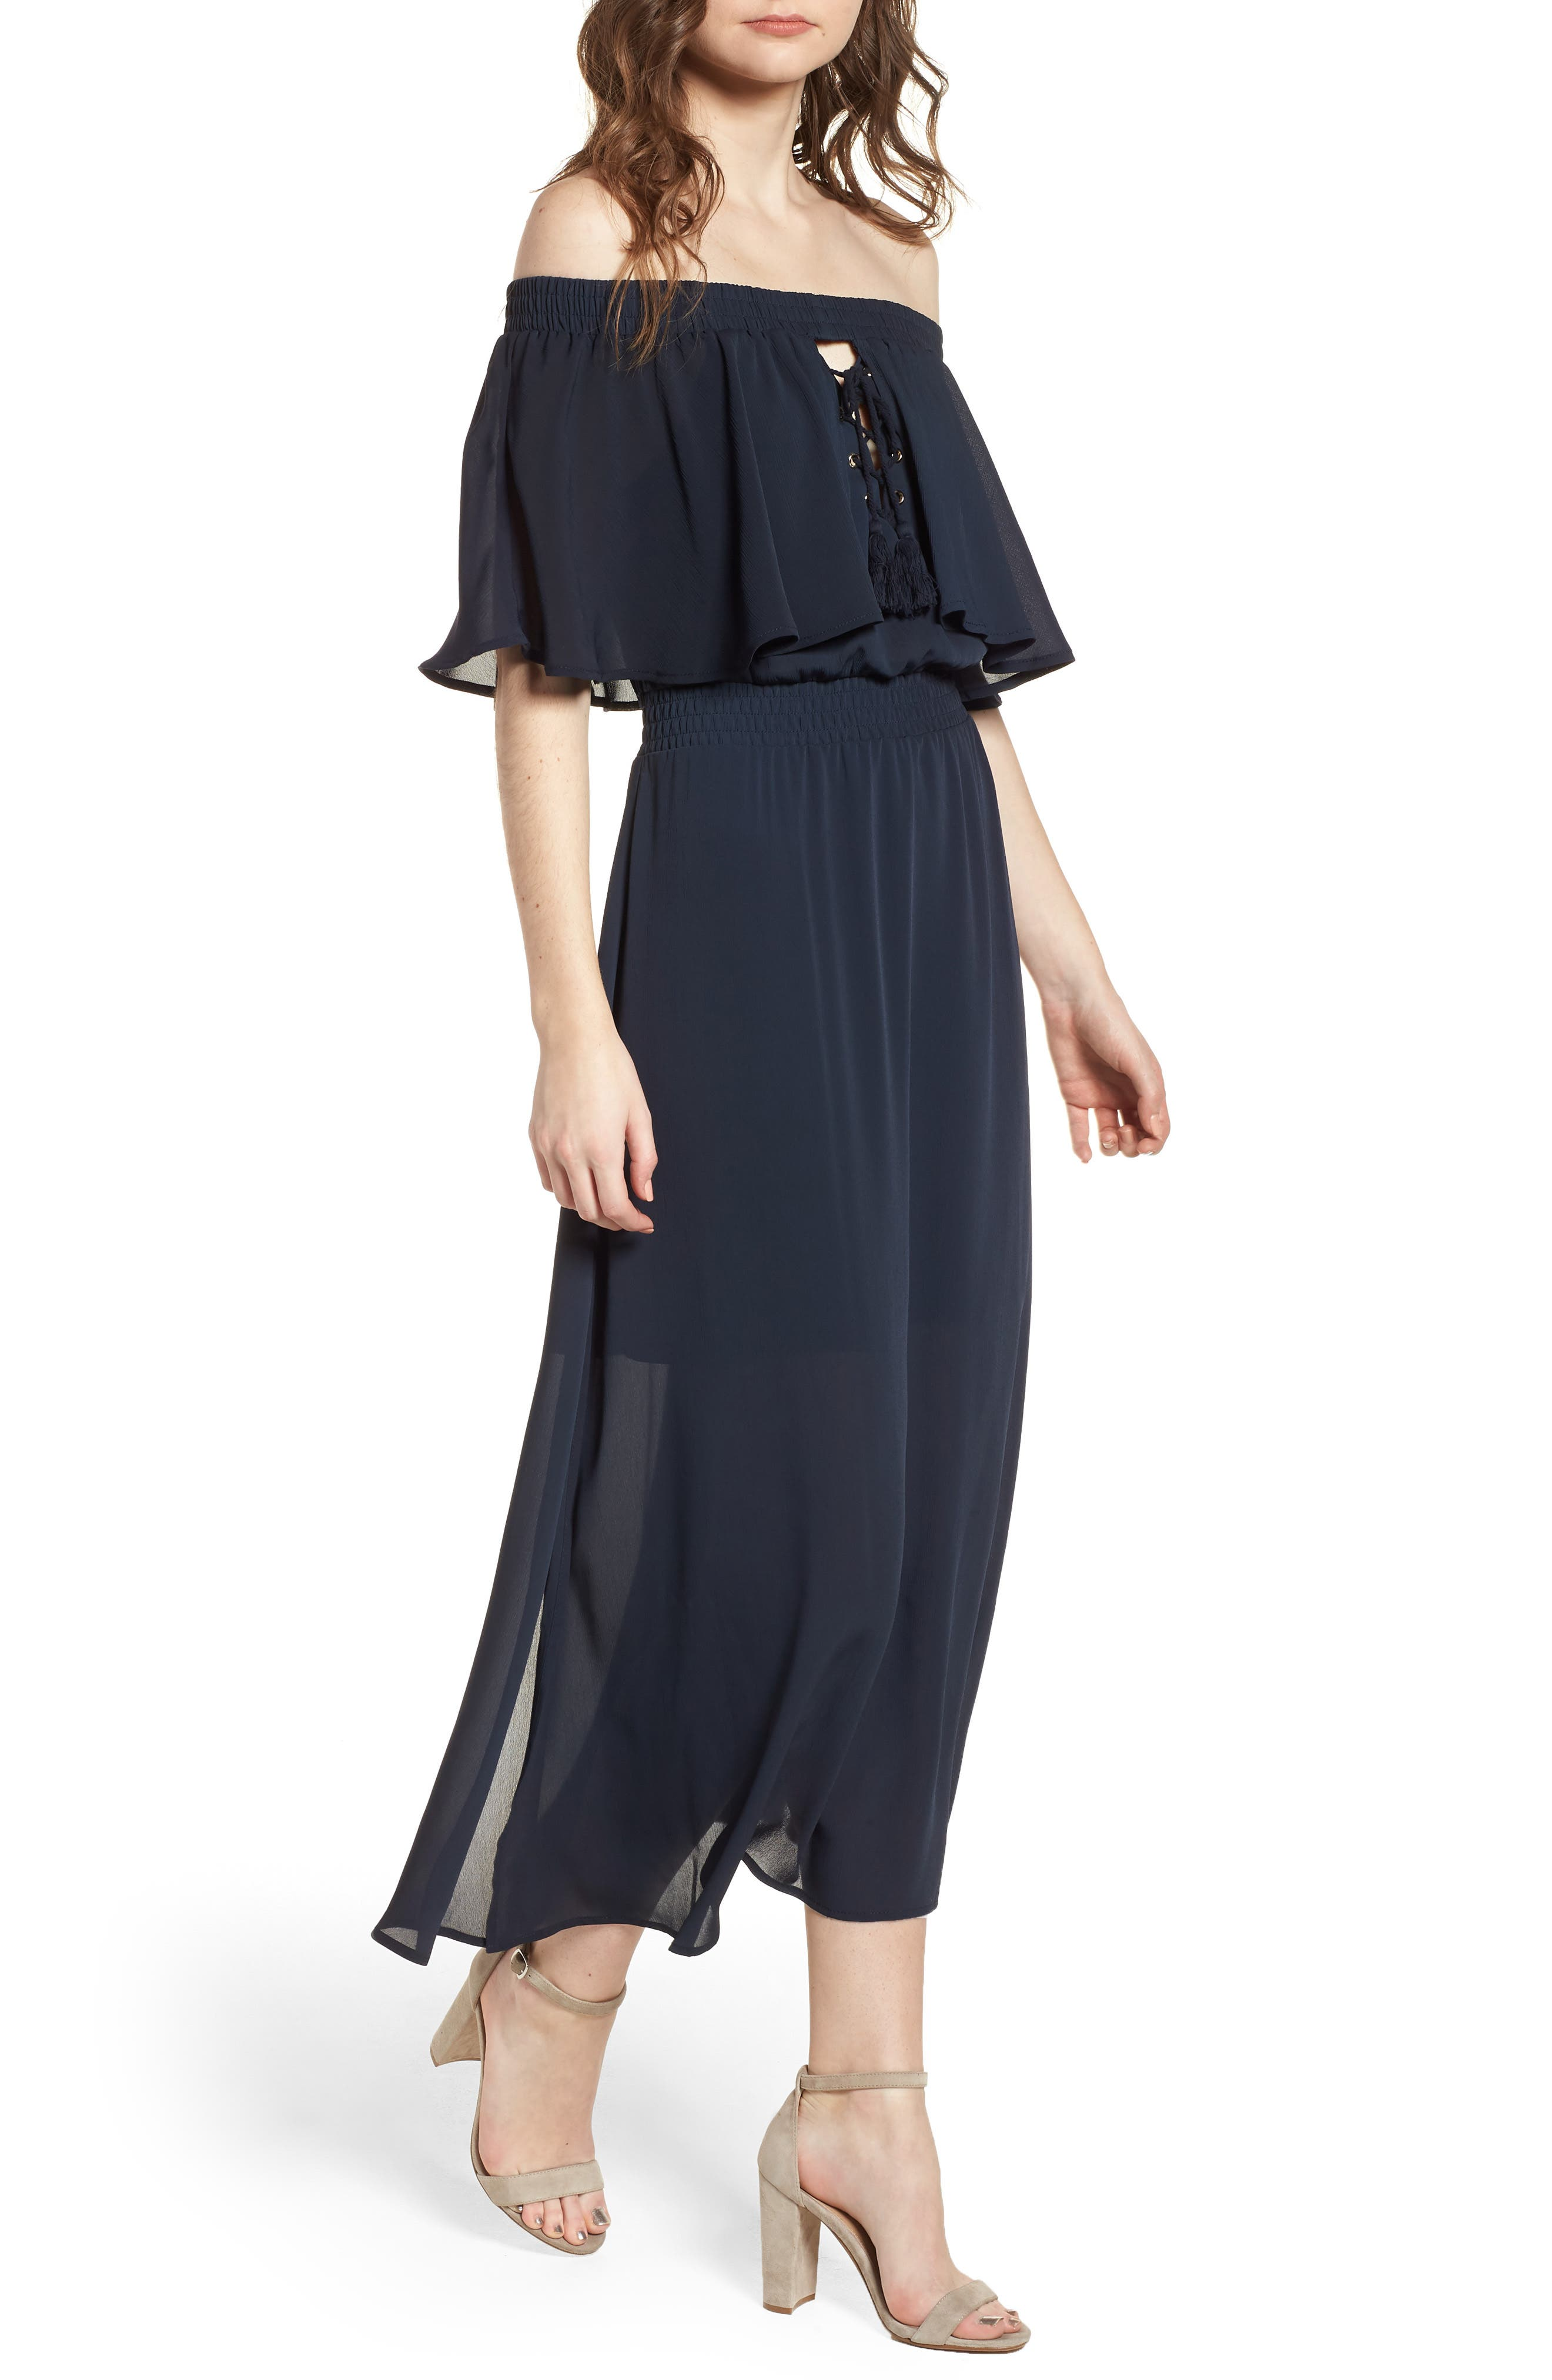 Touch the Sun Off the Shoulder Dress,                         Main,                         color, 410